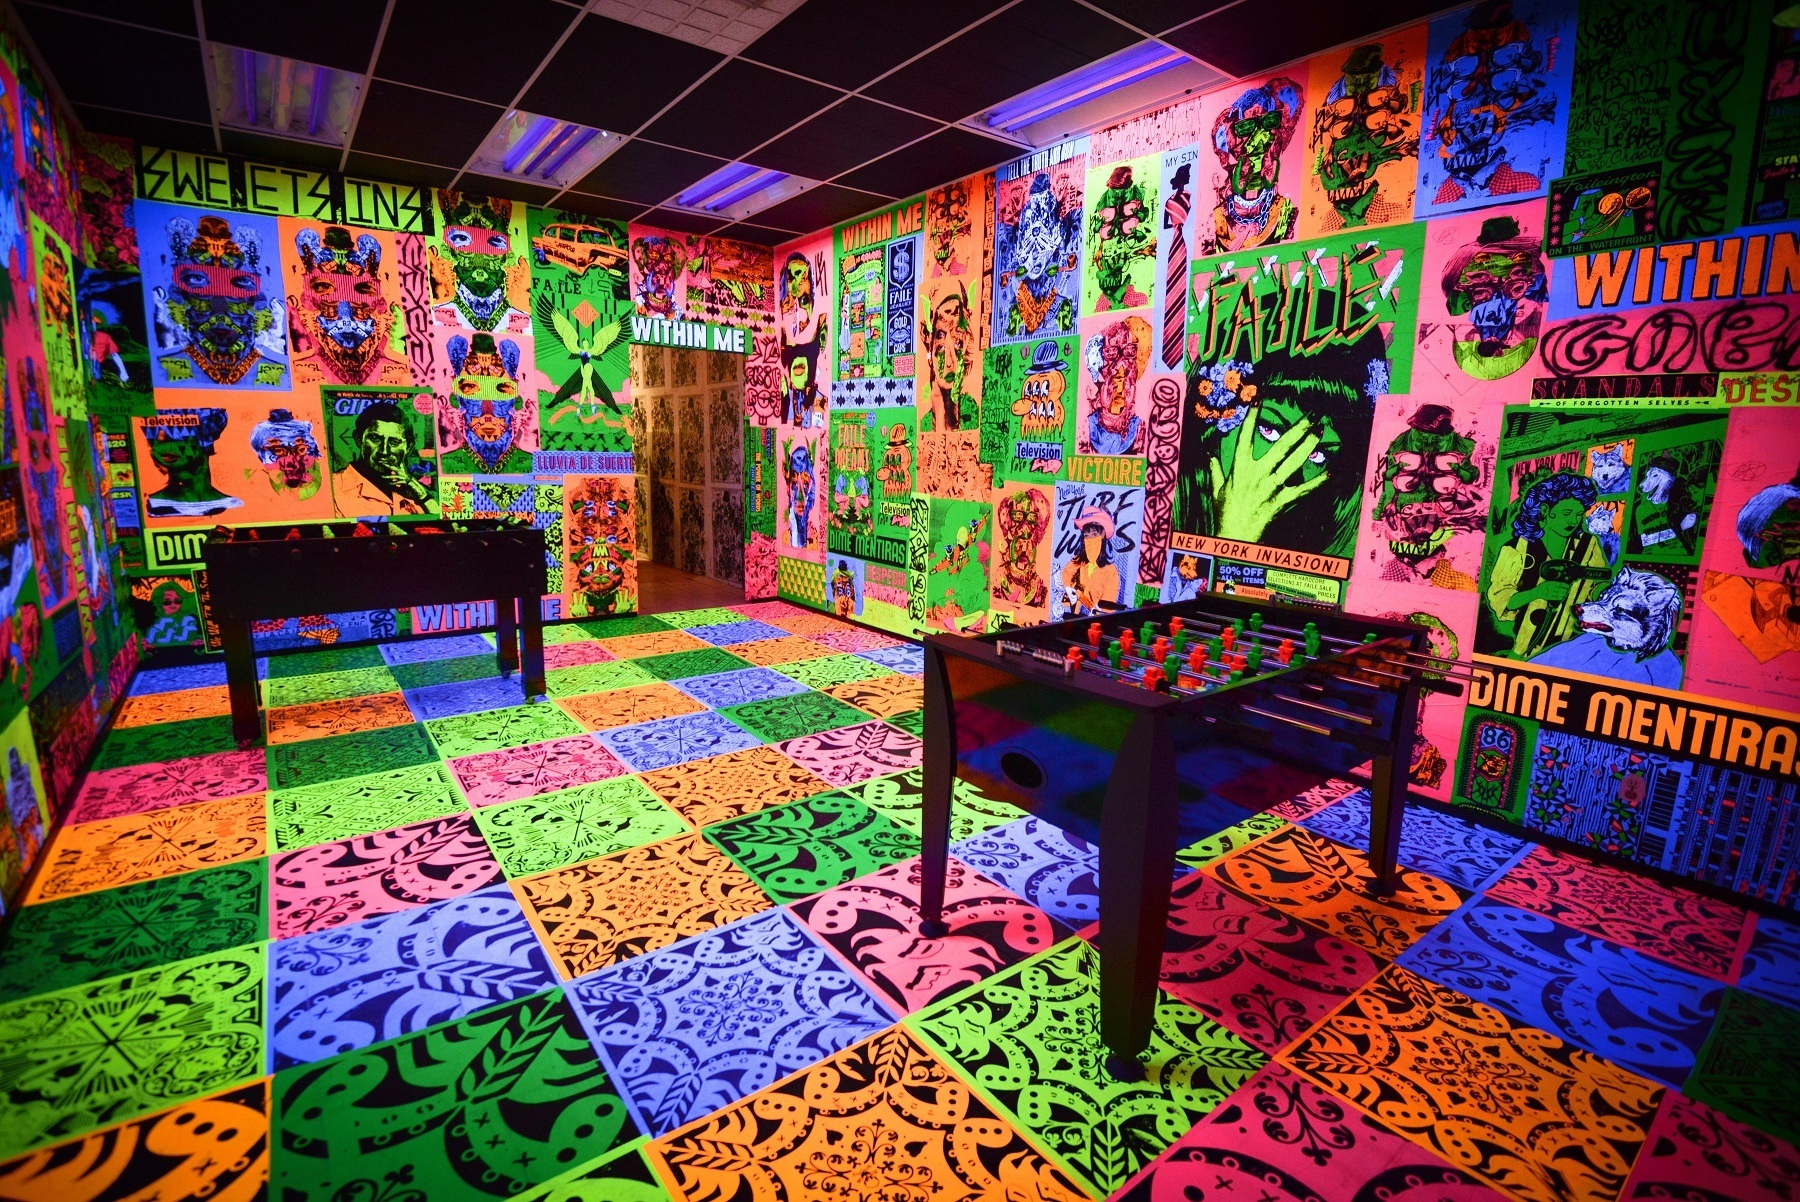 THE FAILE BST DELUXX FLUXX ARCADE 2013 MIAMI BEACH PRESENTED BY PERRIER